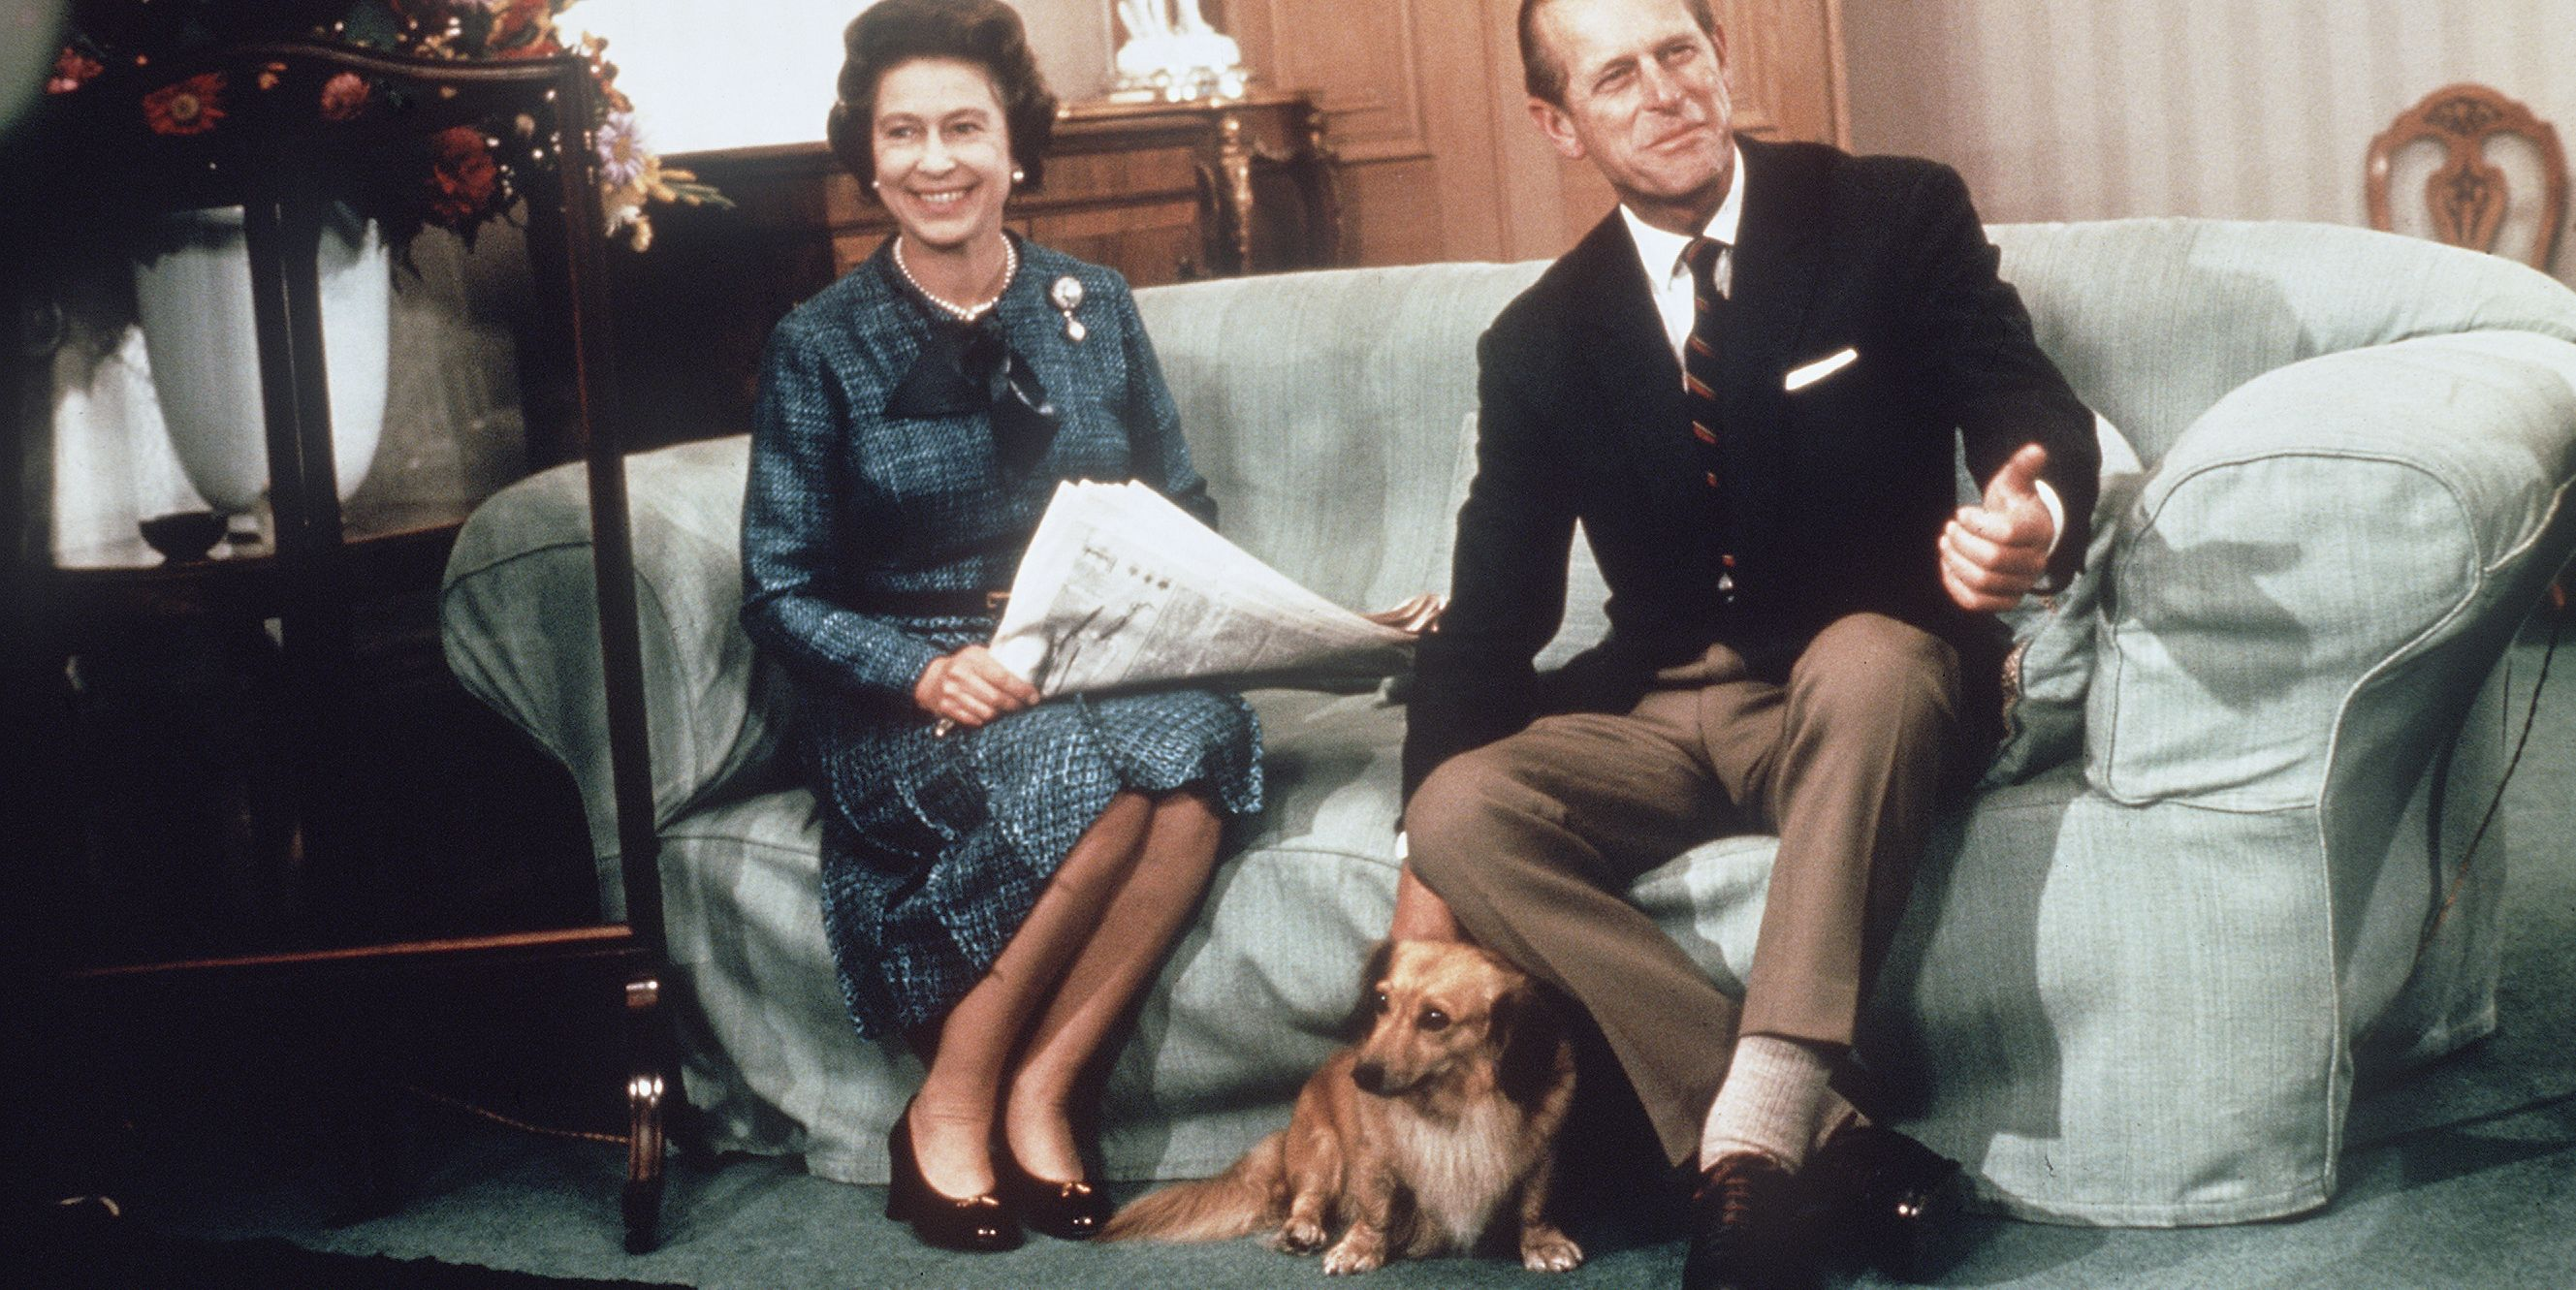 Queen Elizabeth ll and Prince Phillip relax at Balmoral